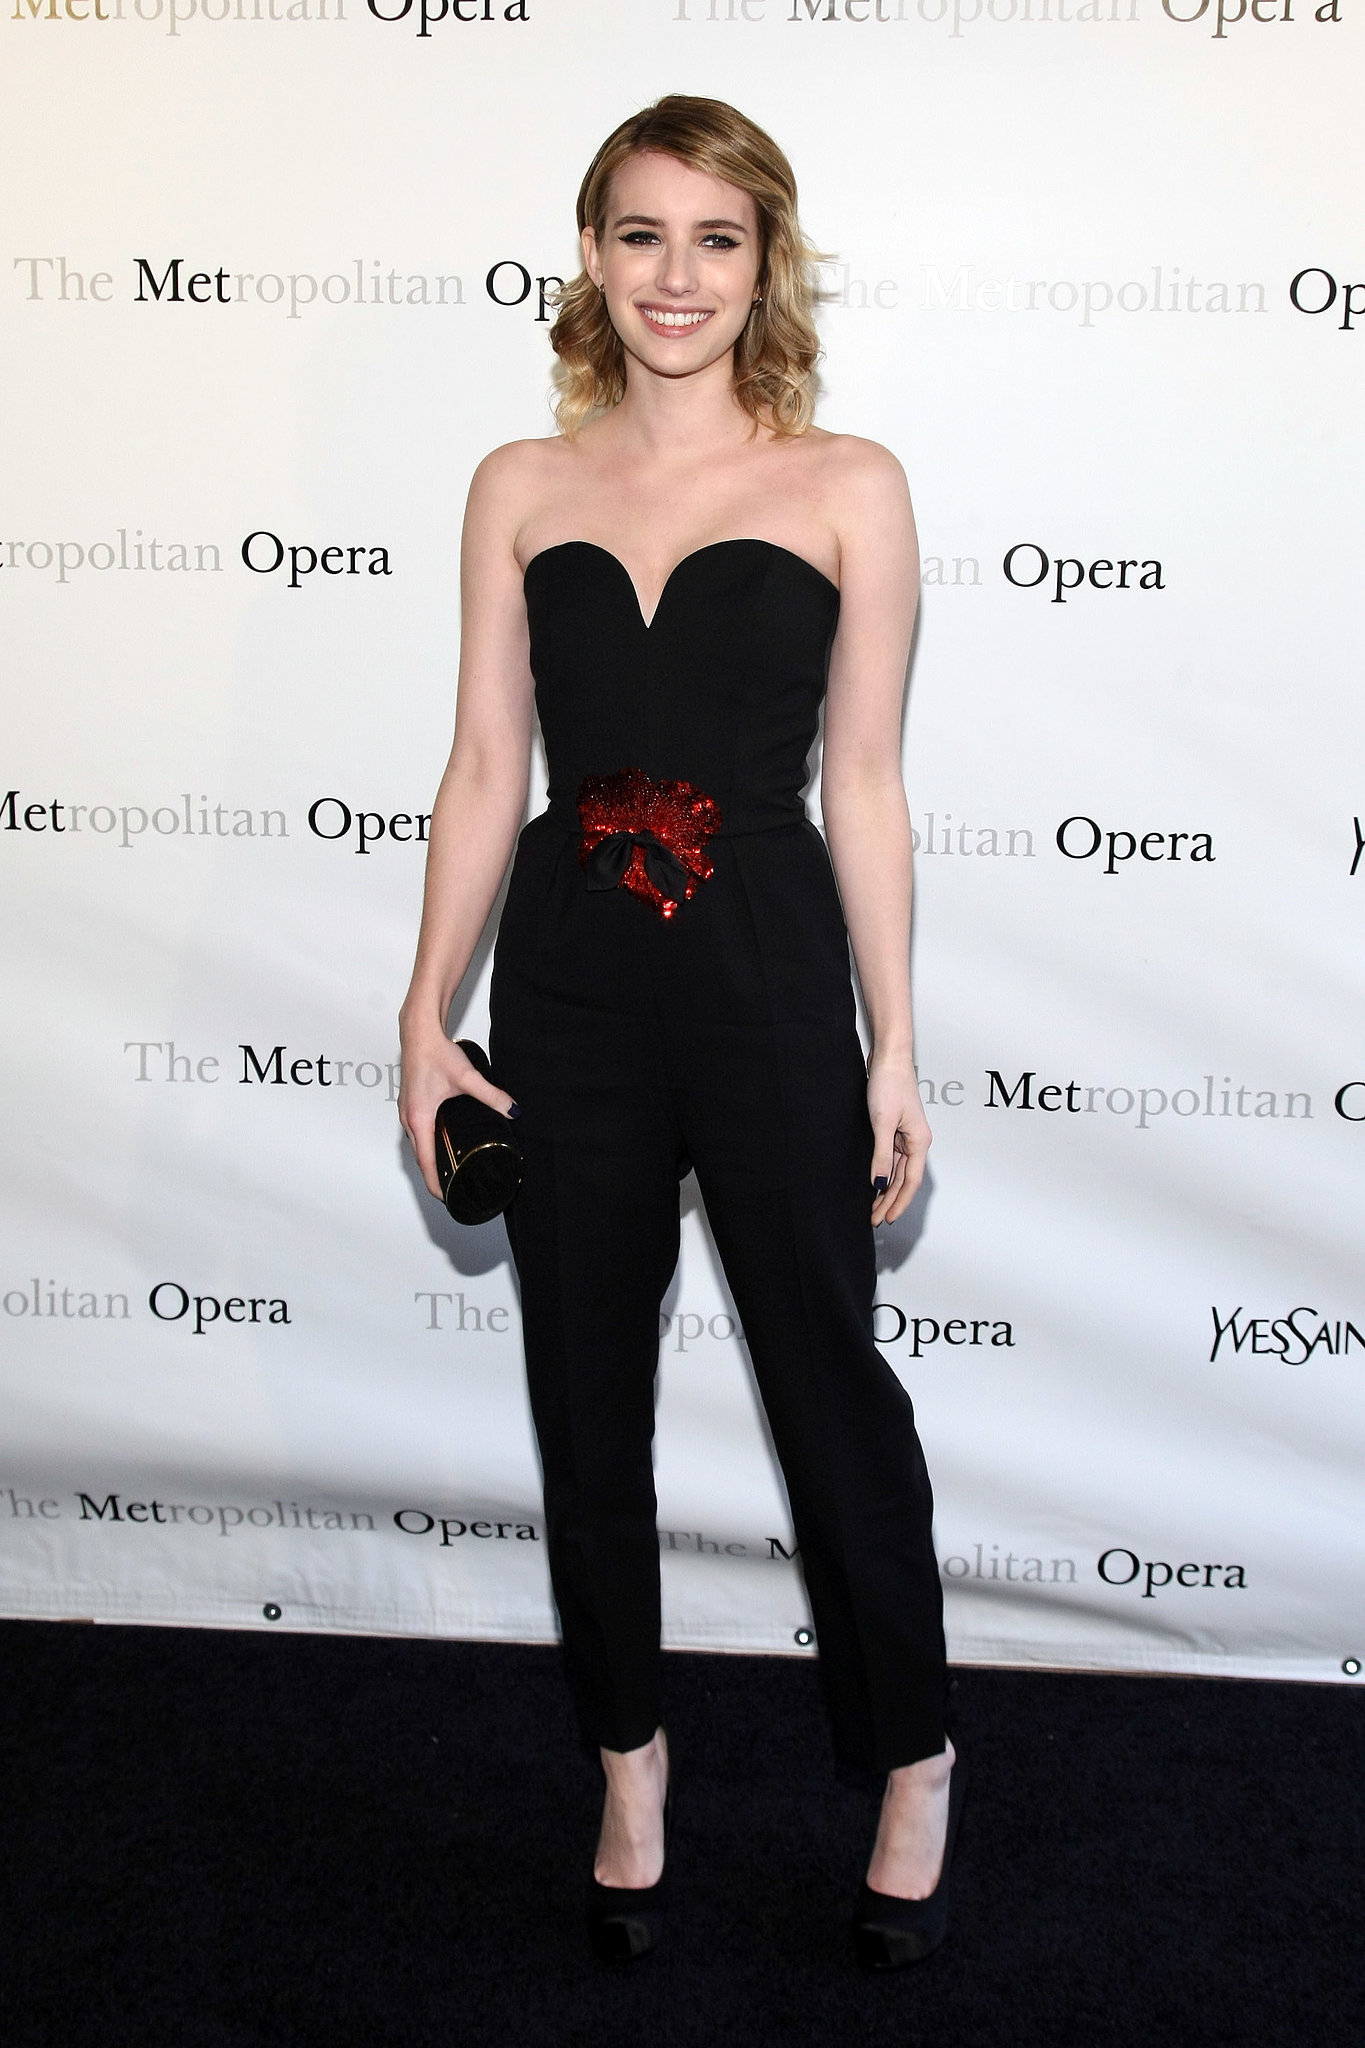 Emma wore a risk-taking black Yves Saint Laurent jumpsuit to a Metropolitan Opera premiere in March 2012.